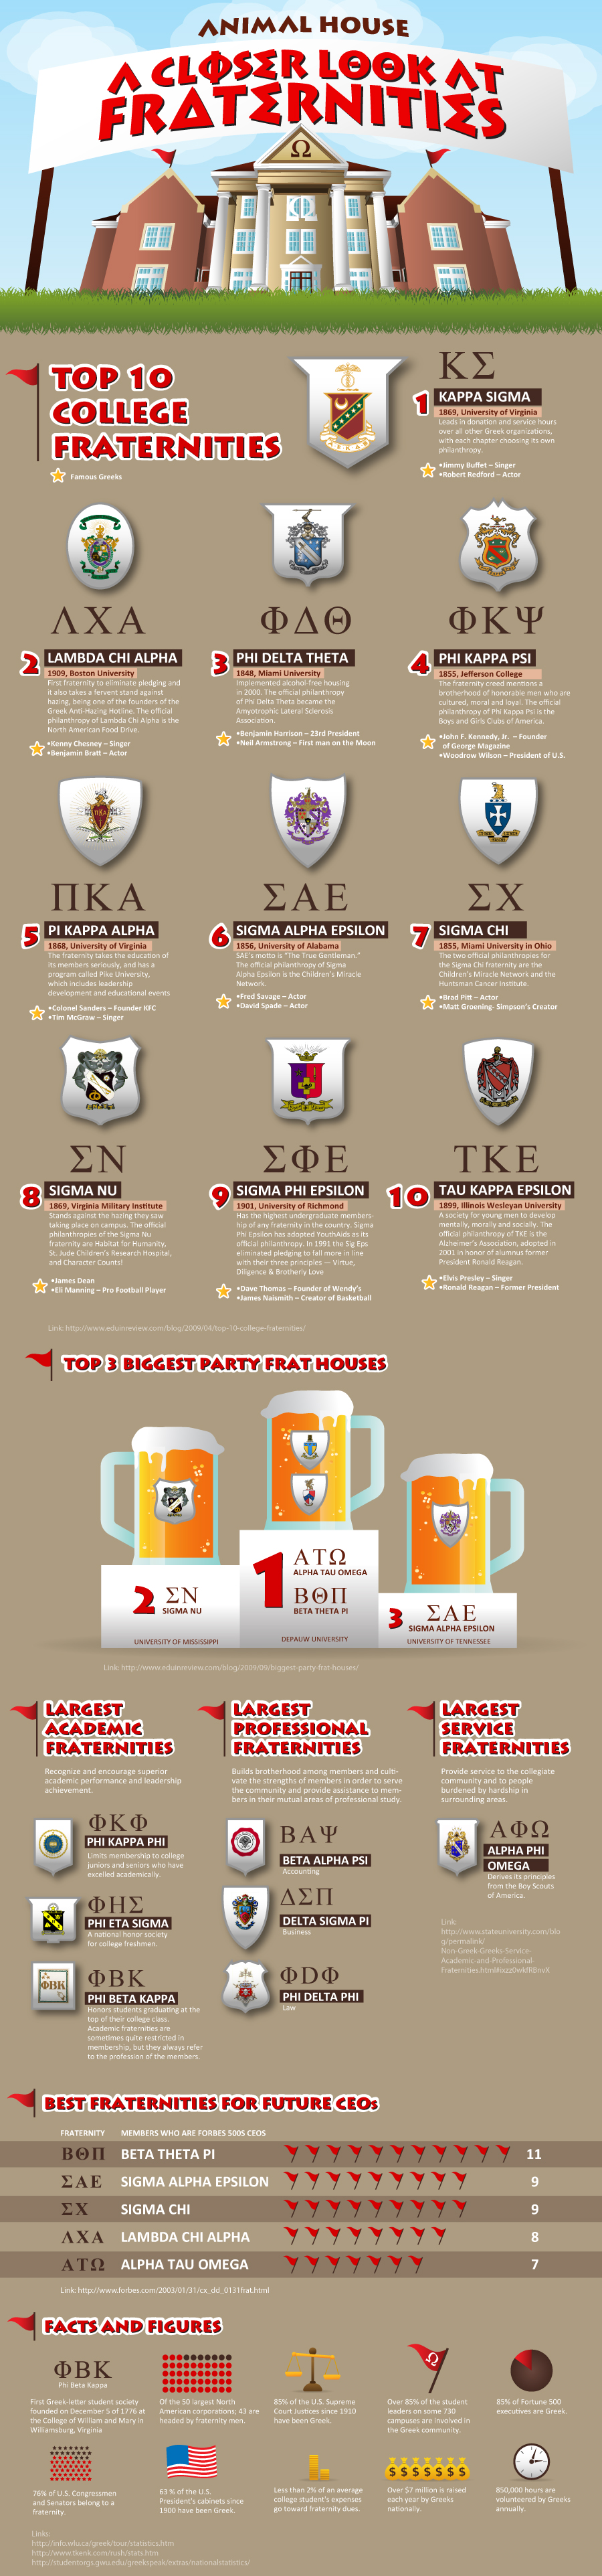 Top 10 College Fraternities